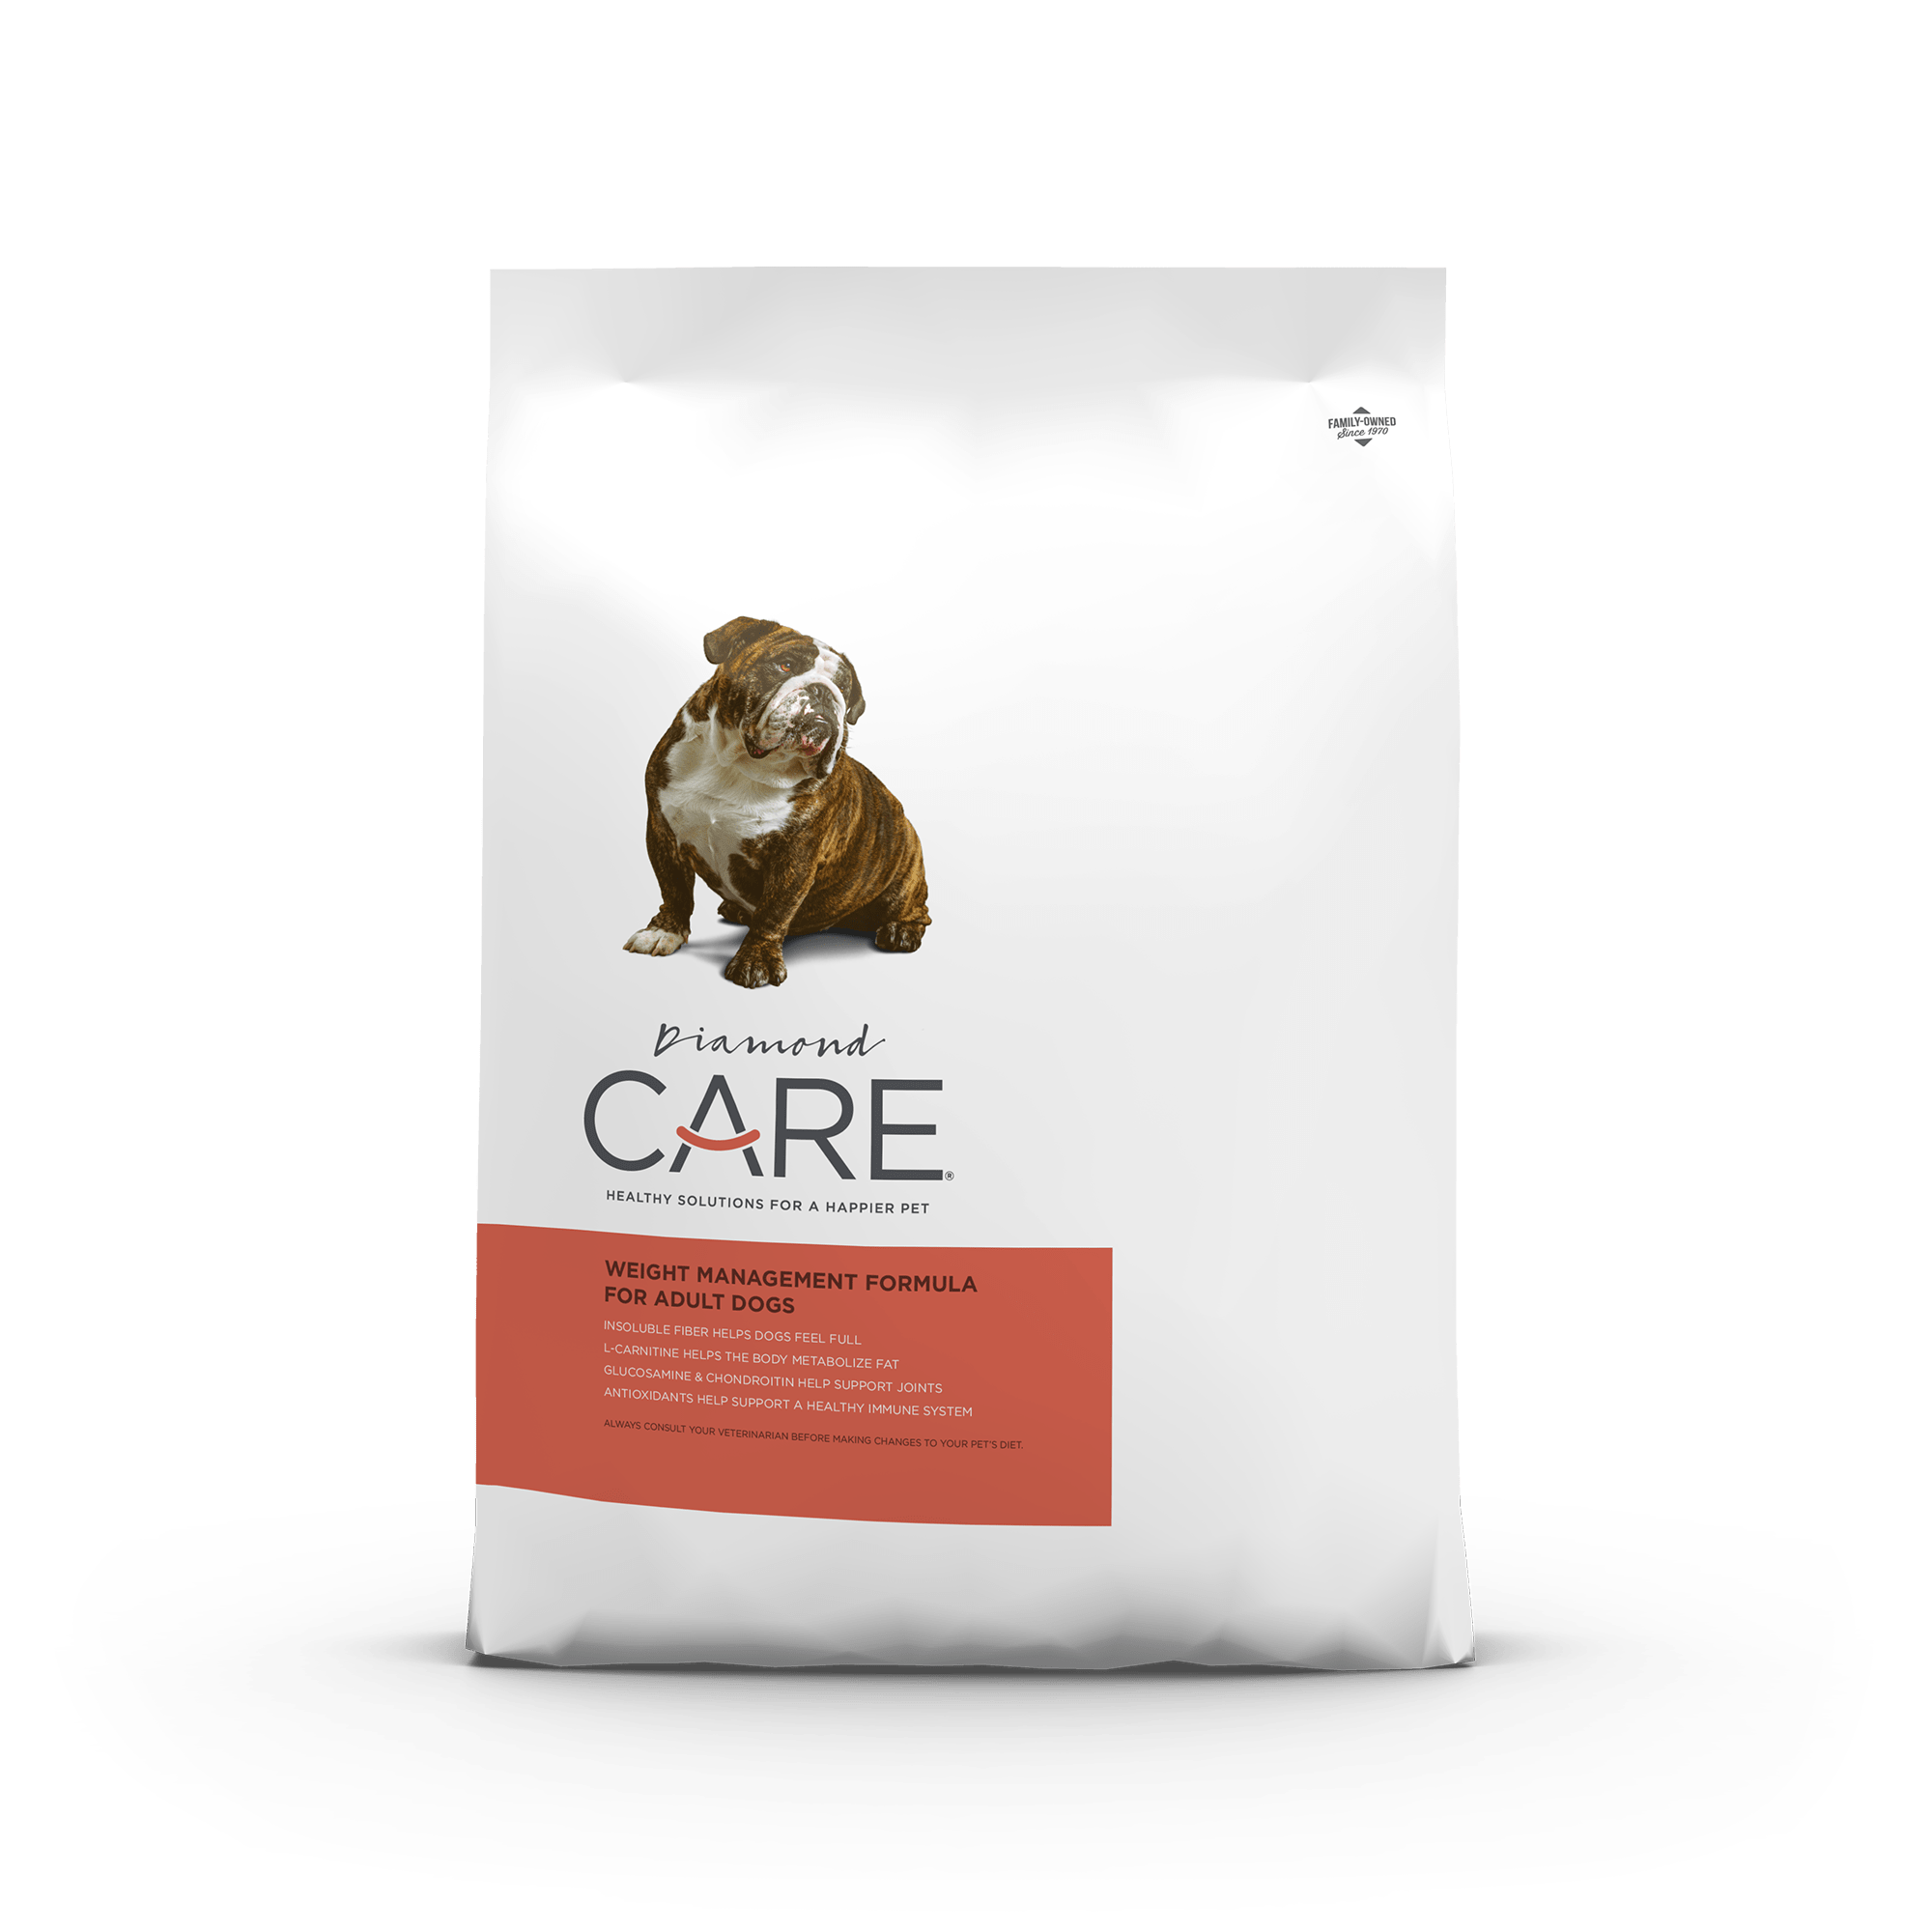 Diamond CARE Weight Management Formula for Adult Dogs product packaging